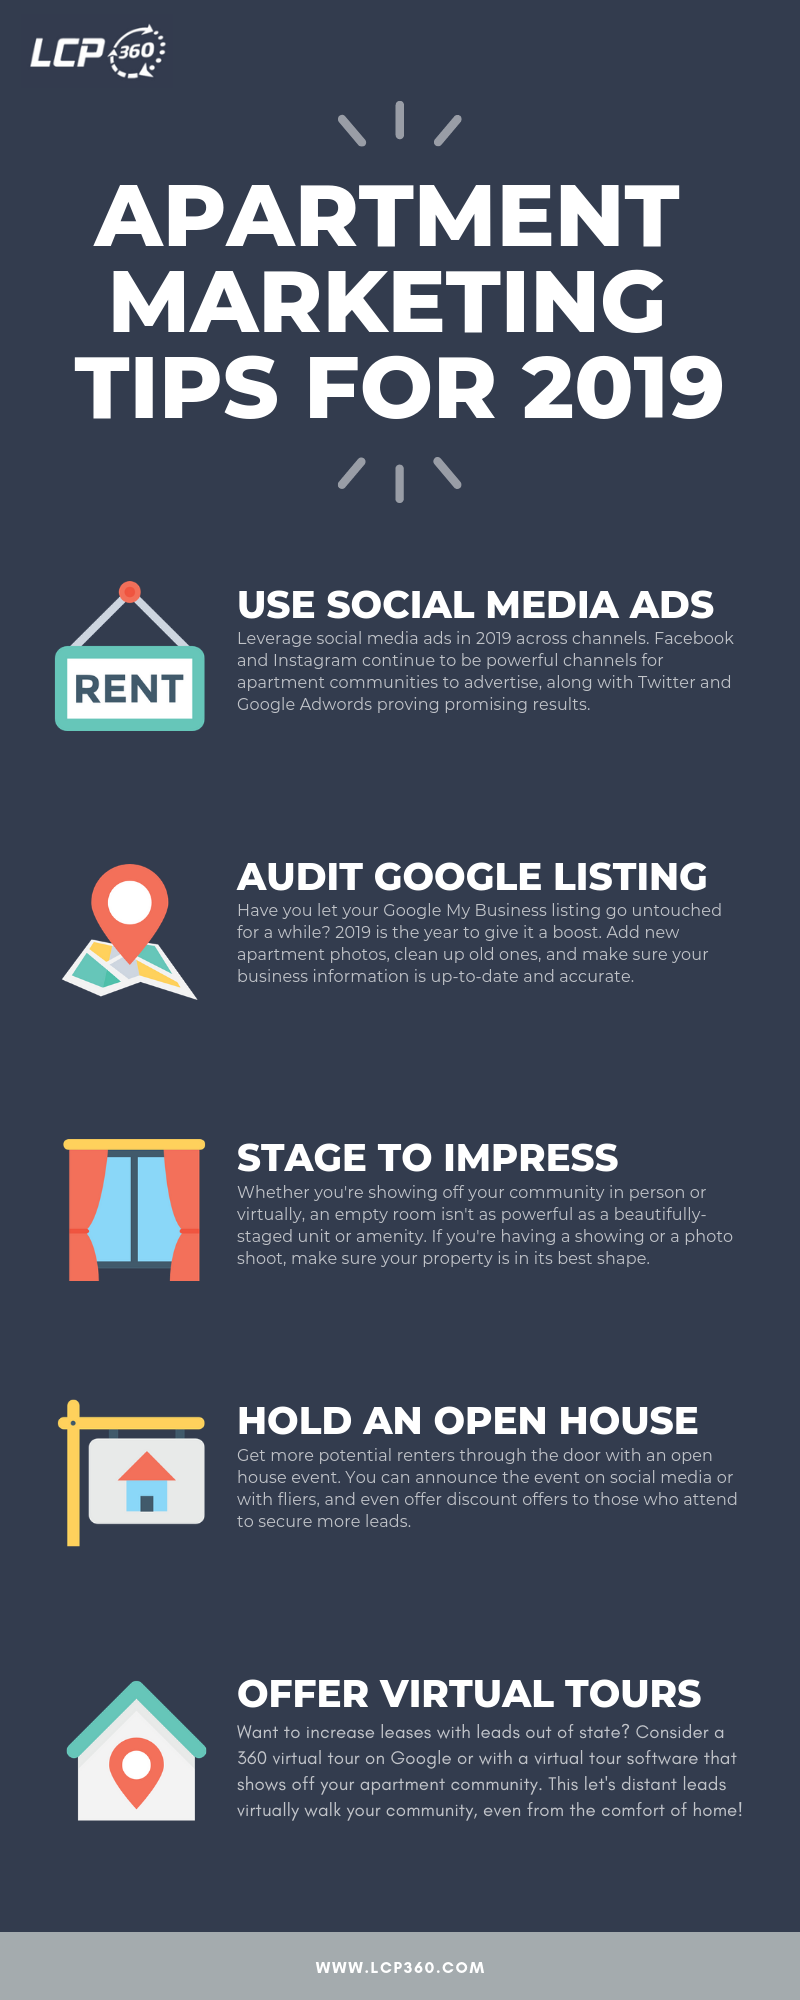 Apartment Marketing Tips for 2019-1